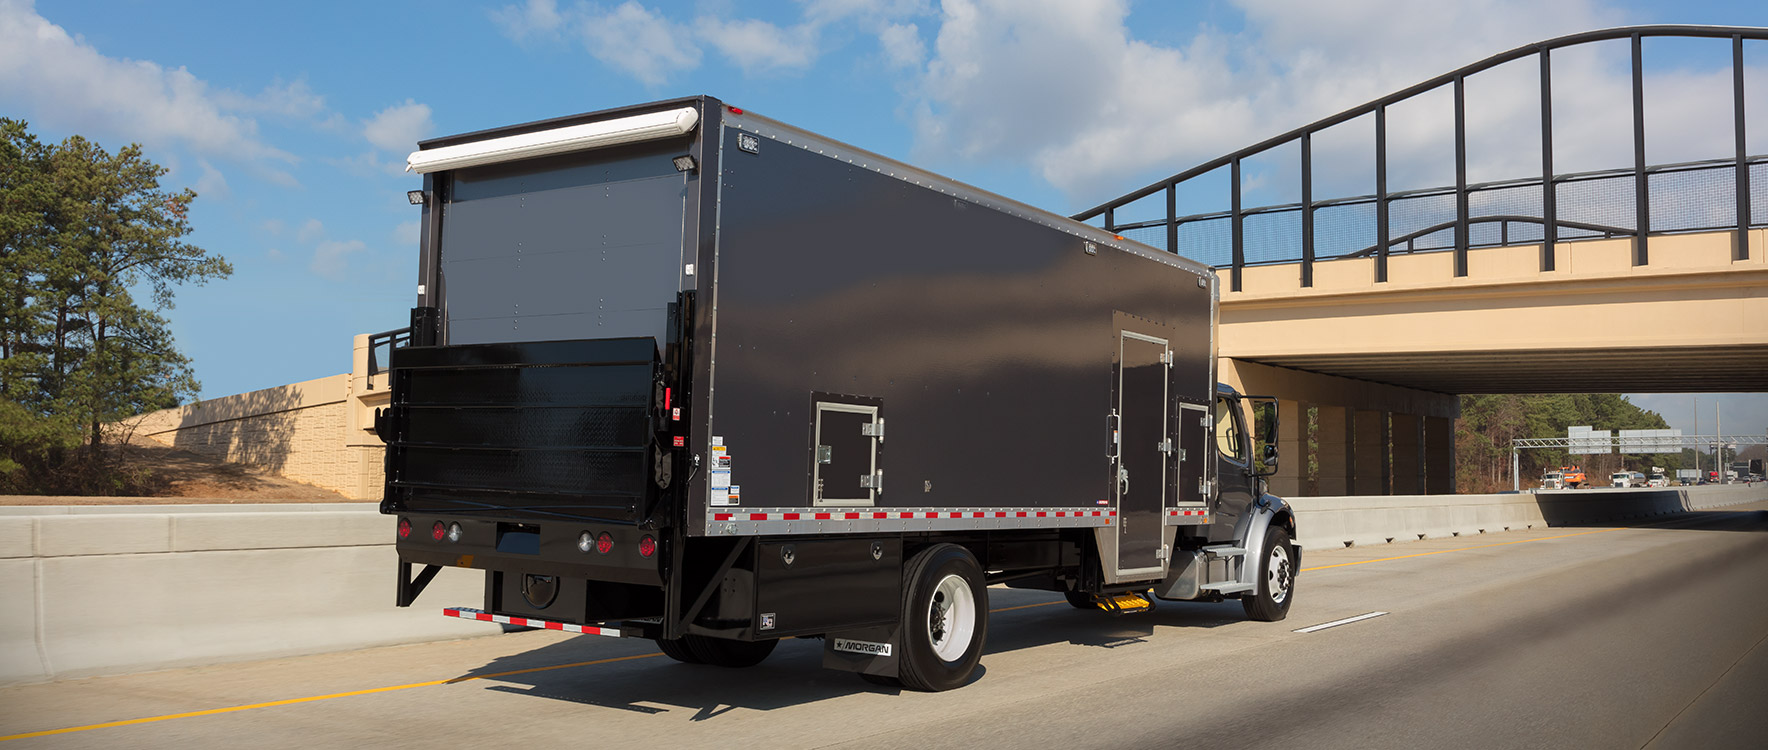 Morgan Dry Freight Mobile Service Unitdriving to a mobile service location